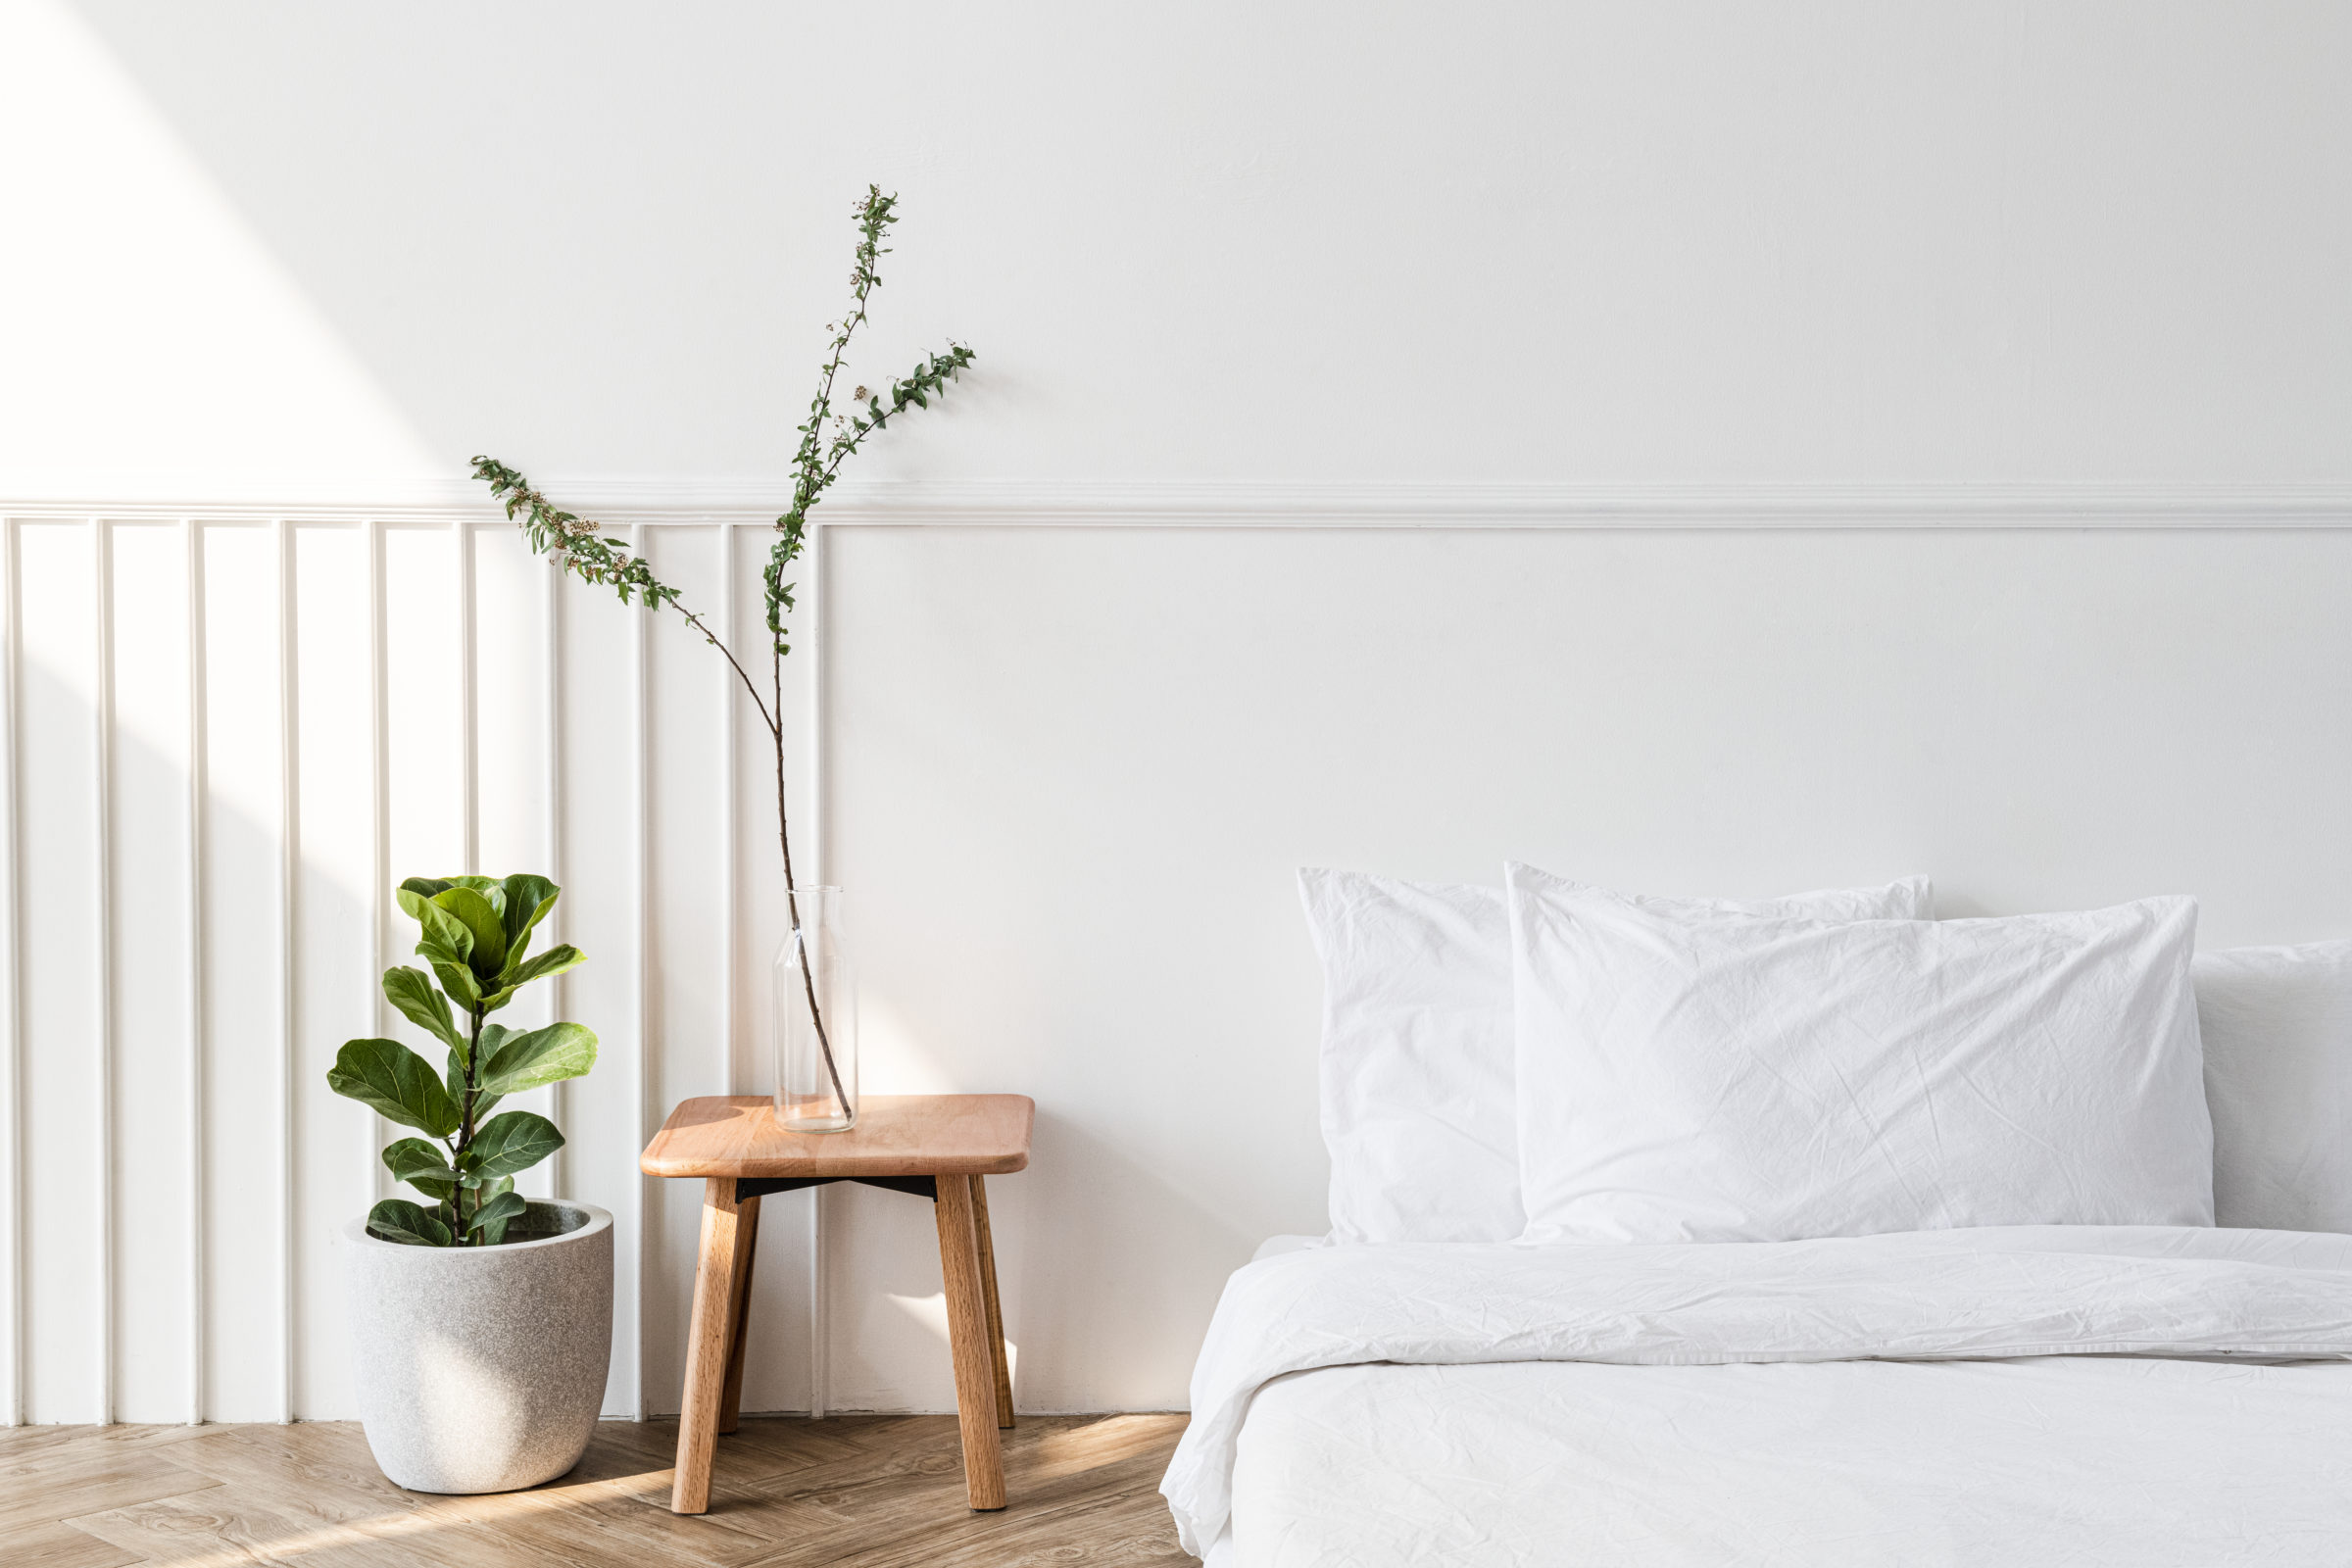 house plants by a mattress on the floor FH22YXF